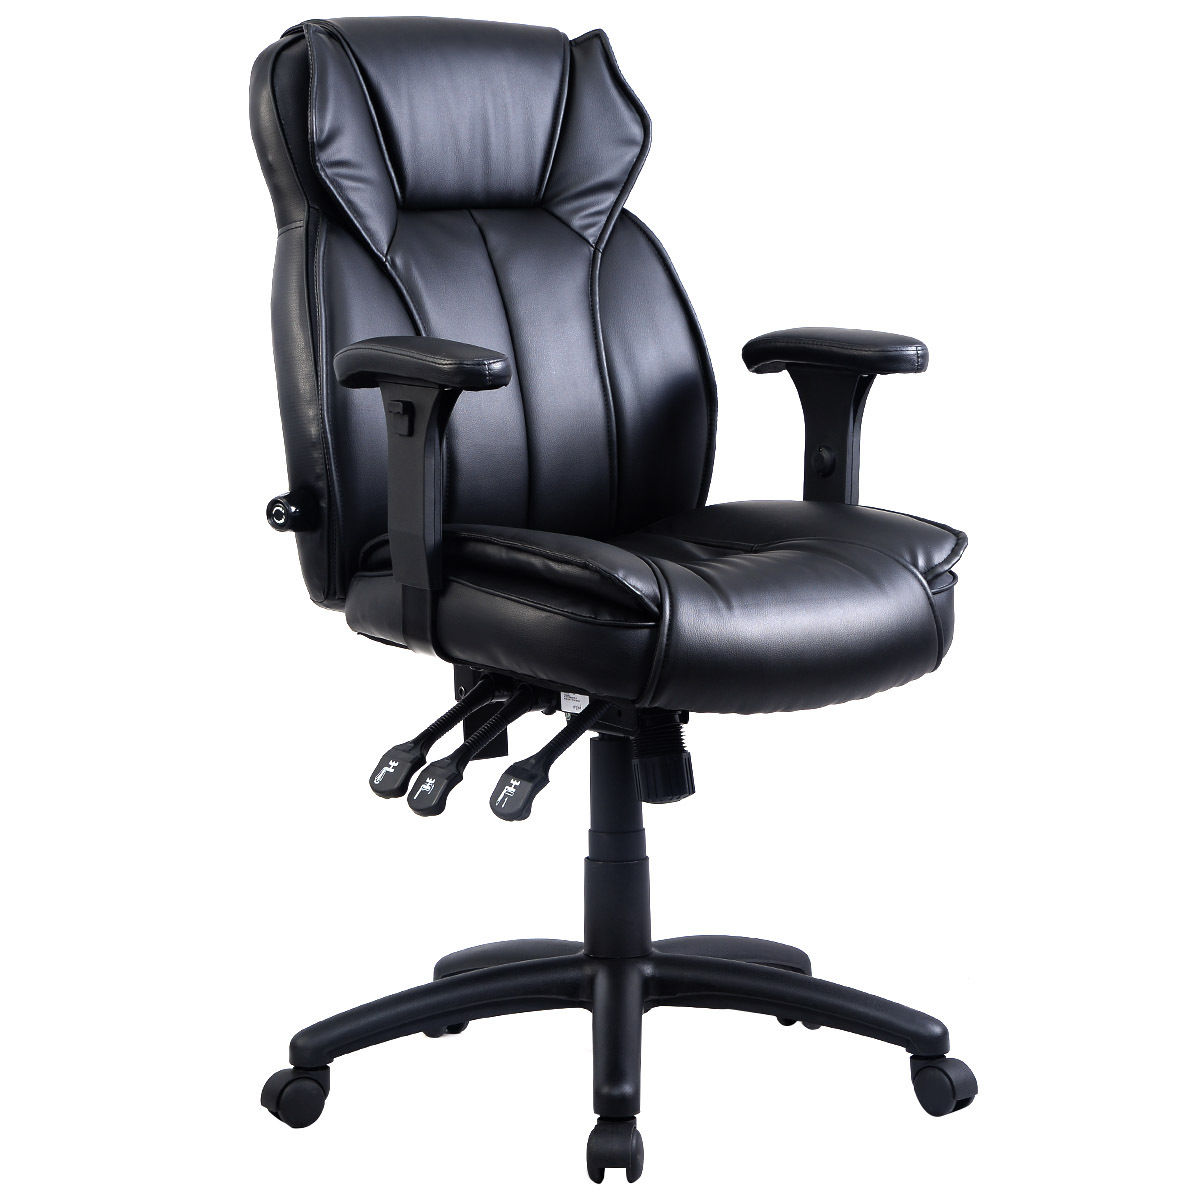 40 lbs Ergonomic PU Leather Office Chair